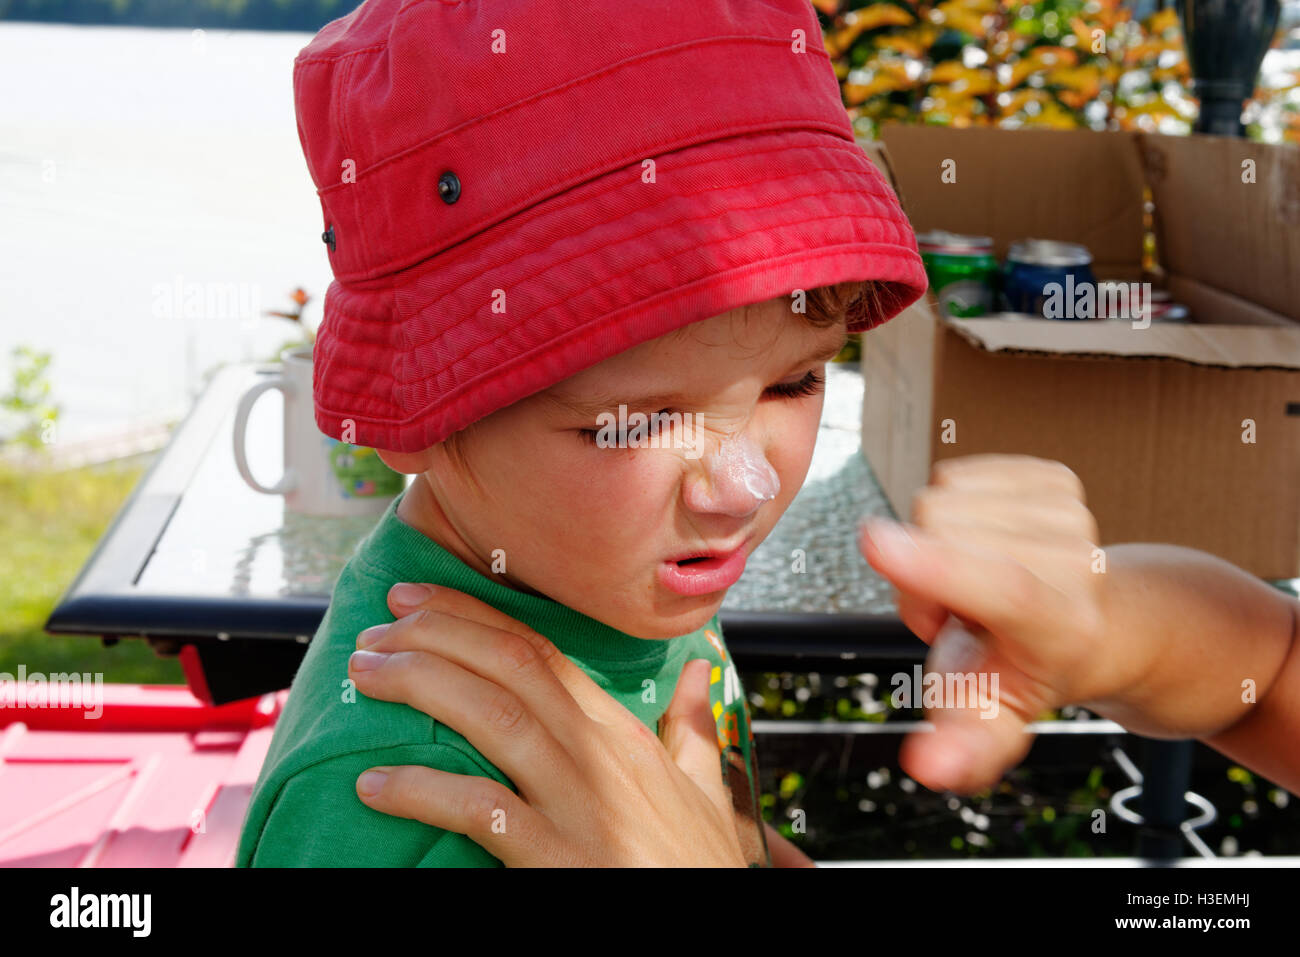 A young boy (4 yrs old) reluctantly having suncream put on his face by his mum - Stock Image